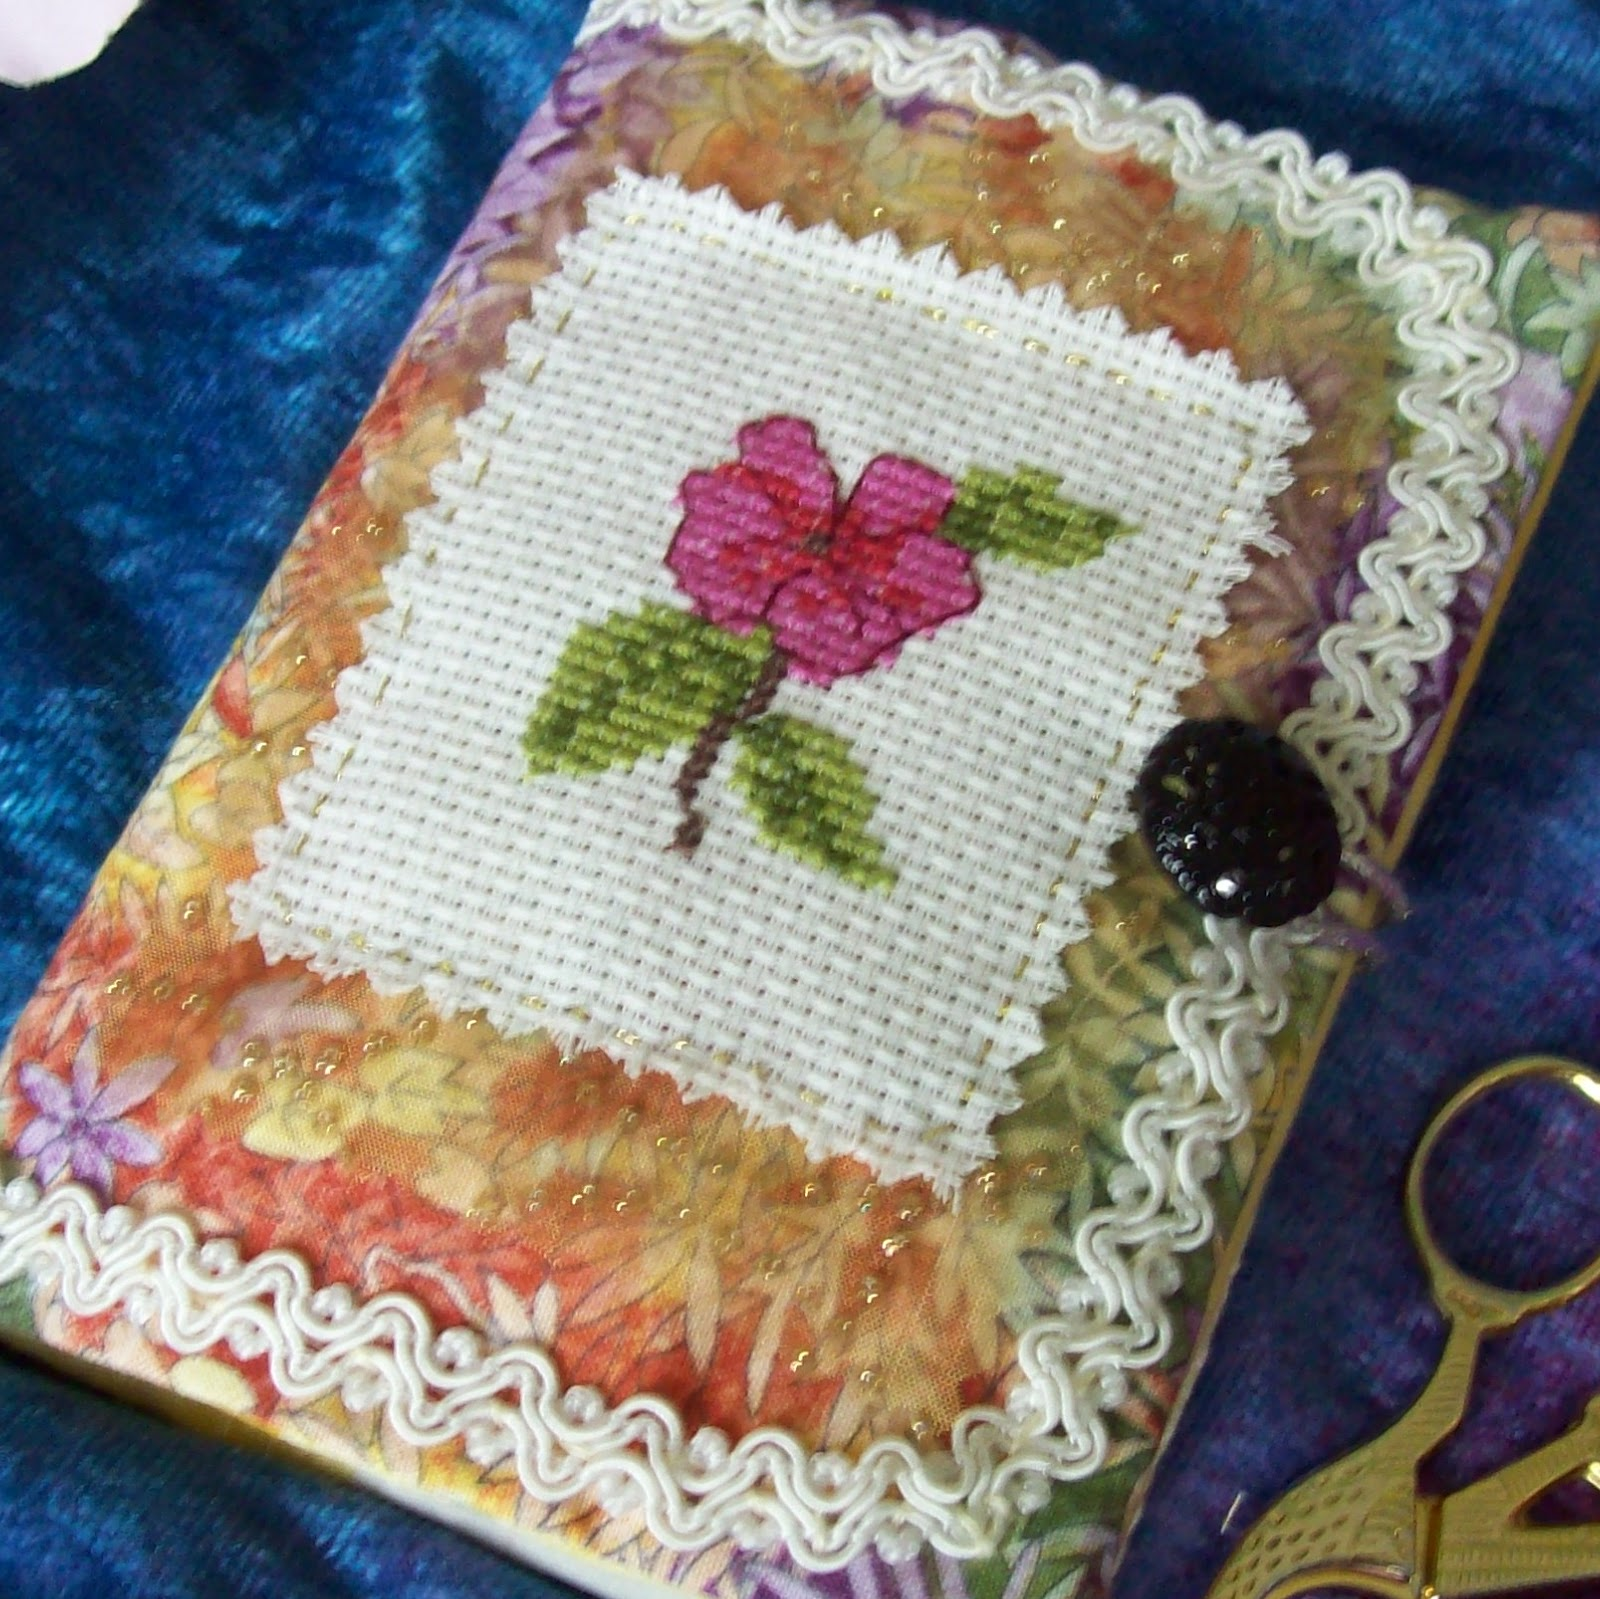 PINK FLOWER NEEDLECASE IN CROSS STITCH